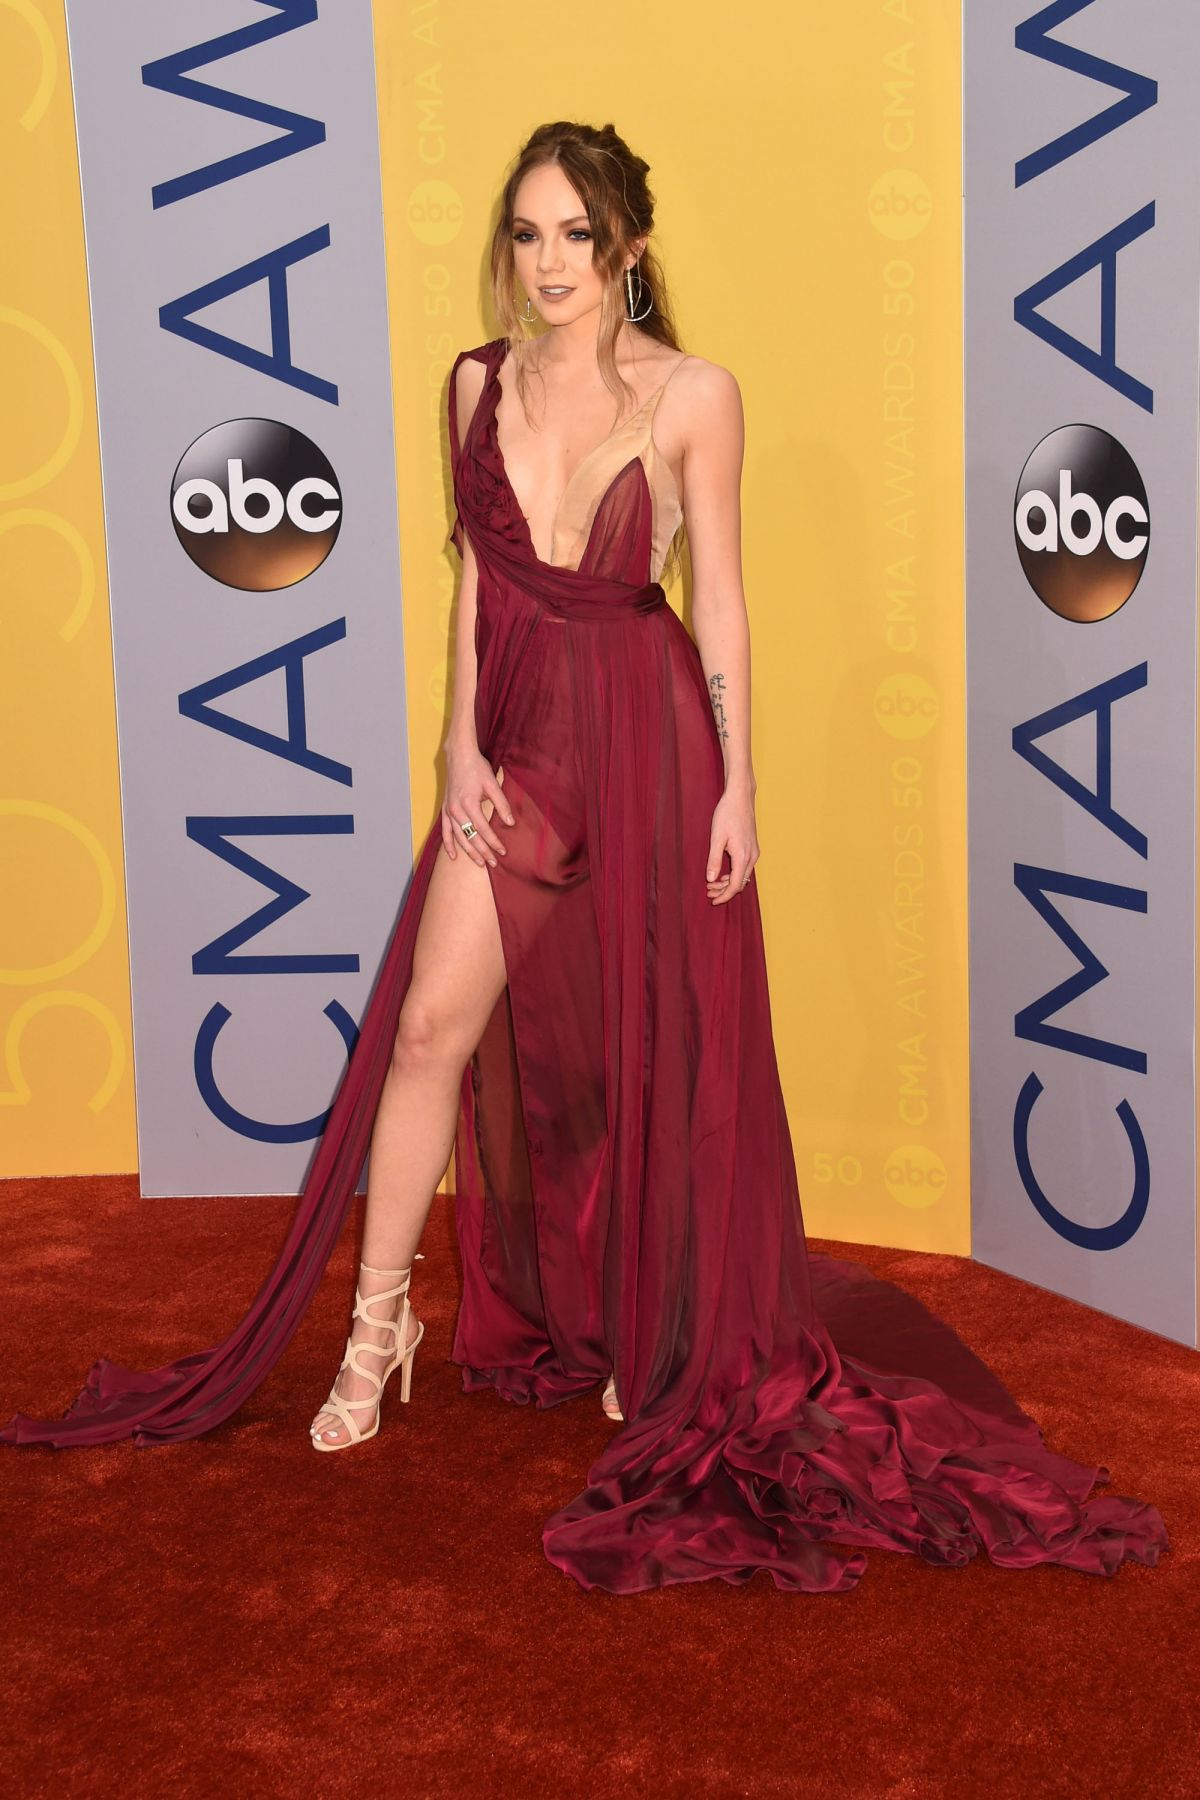 Danielle Bradbery 50th Annual Cma Awards Nashville 11022016 together with Oscar Predictions Based On Movie Trailers as well Dolly Parton Announces New Album Tour in addition Lawrence Roberts as well 89663286. on acm awards nominations